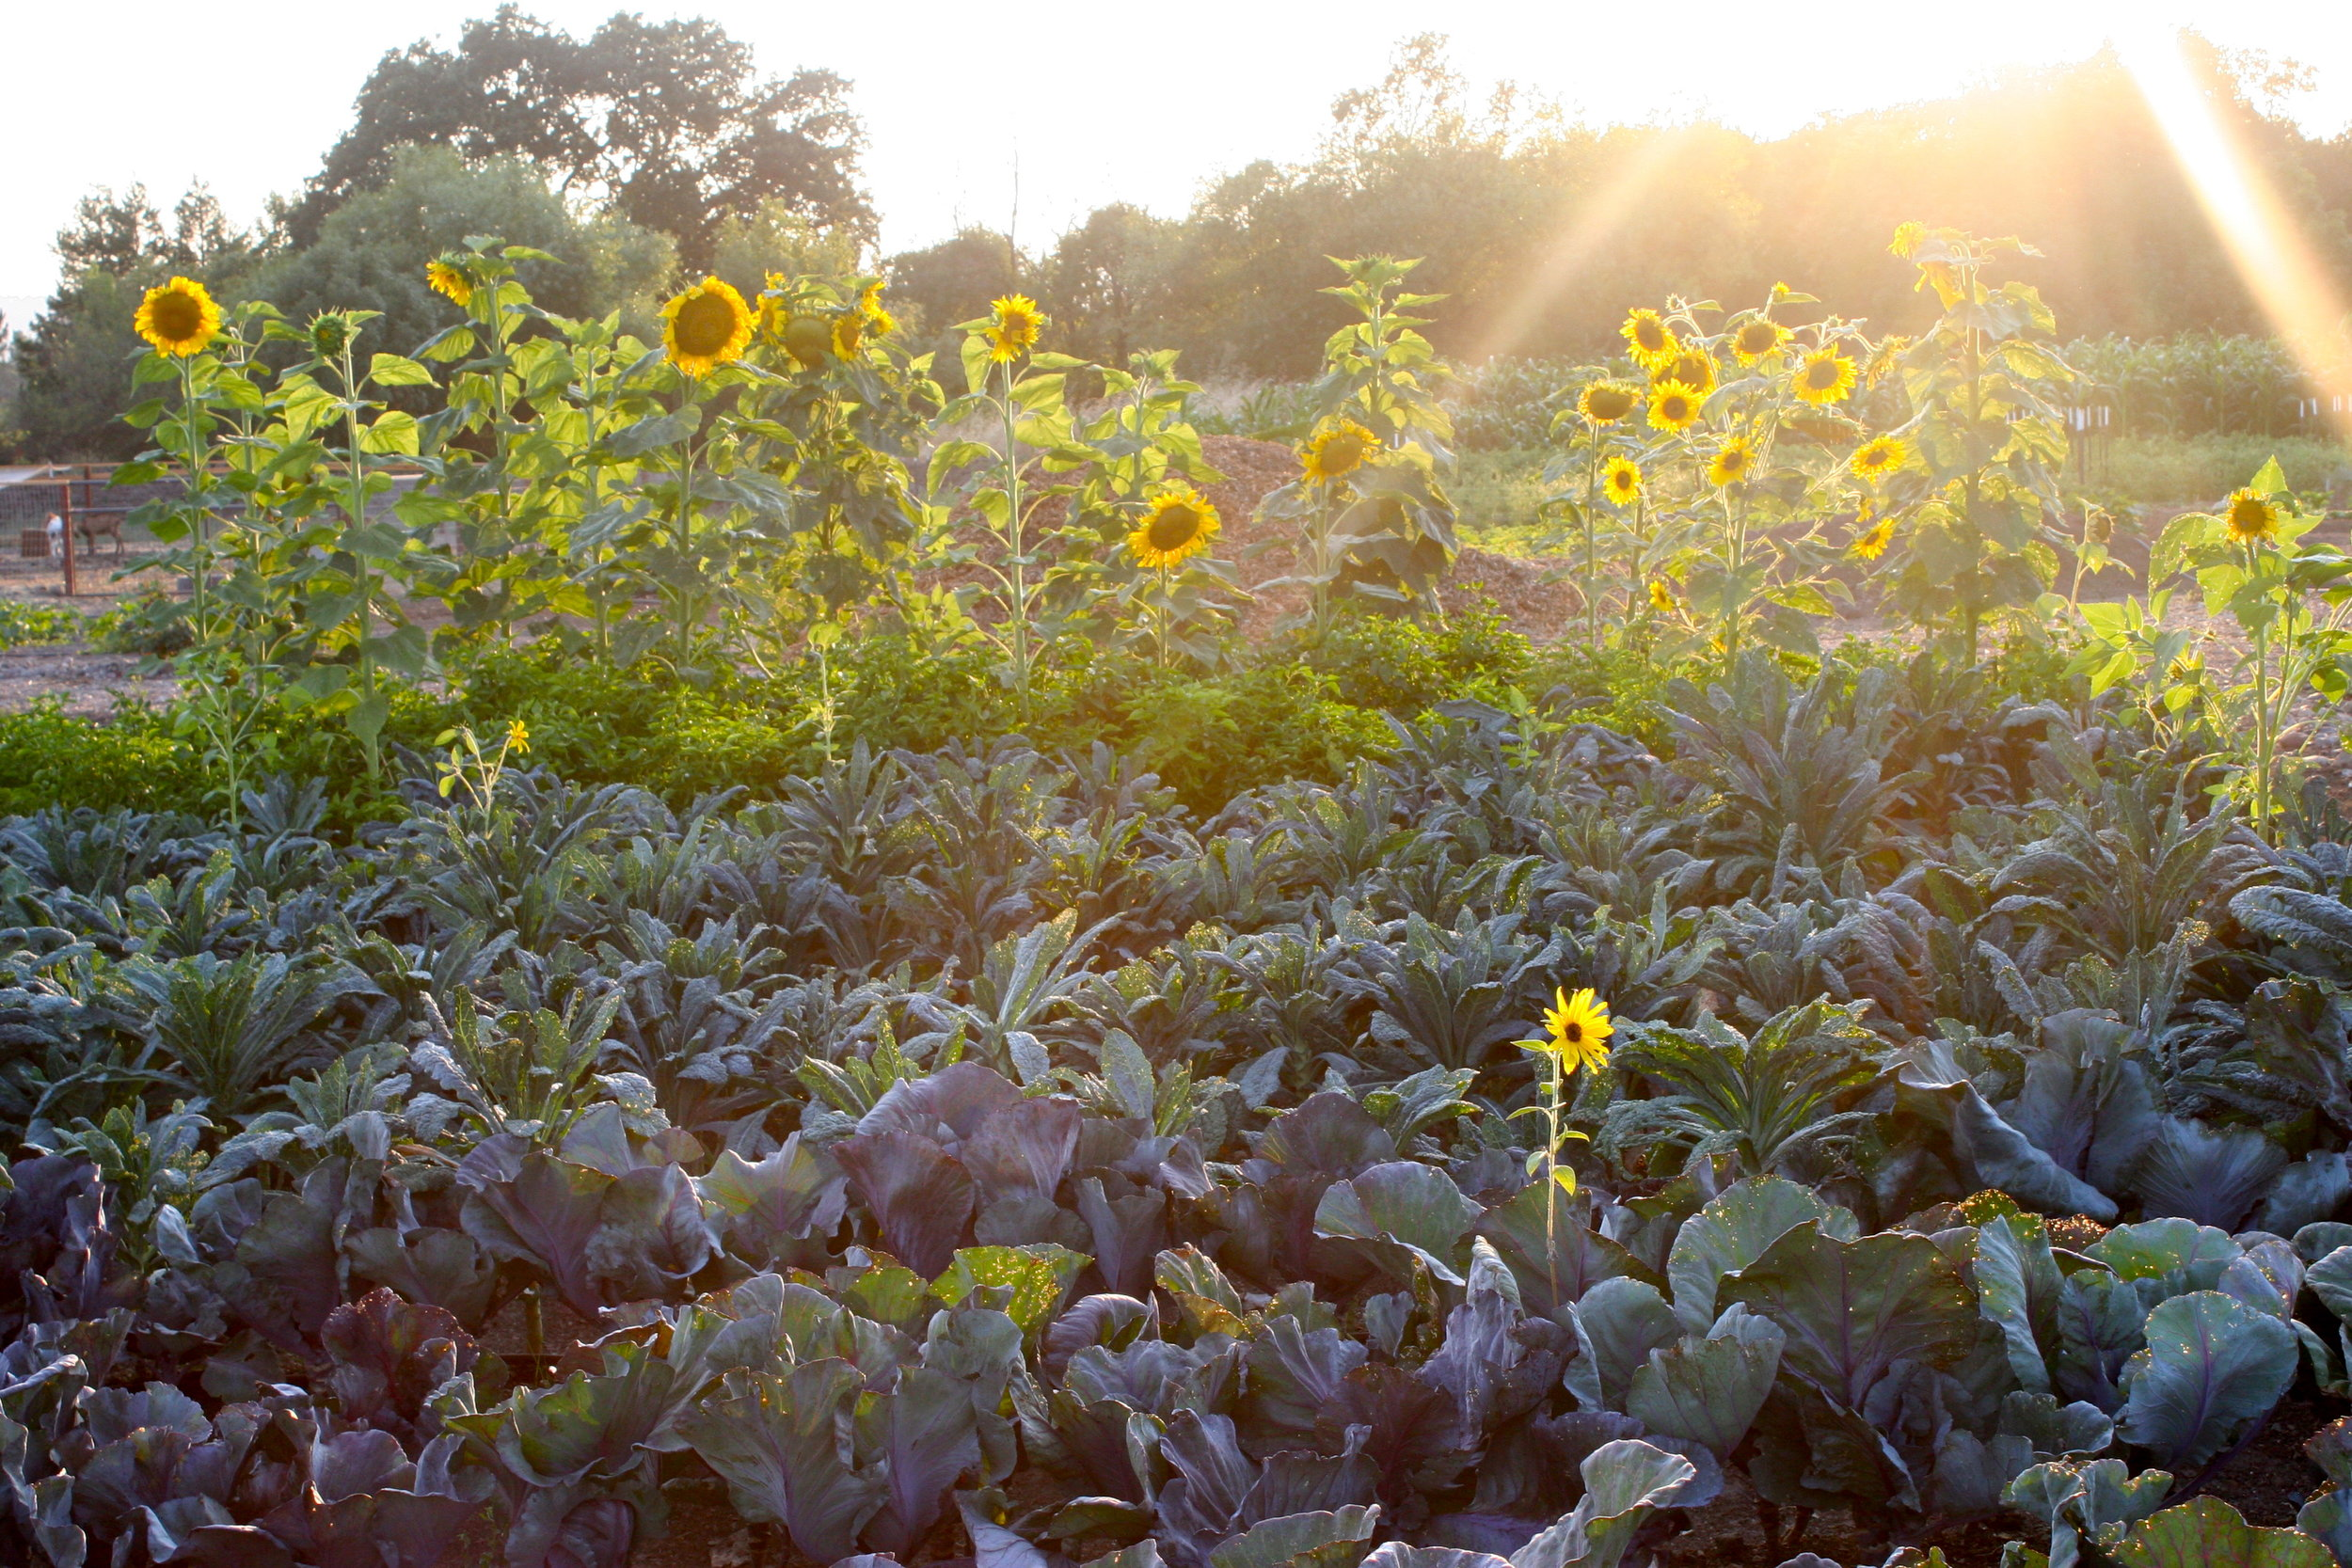 dusk - sonoma broadway farms - cakebloom - sunflowers - kale.JPG